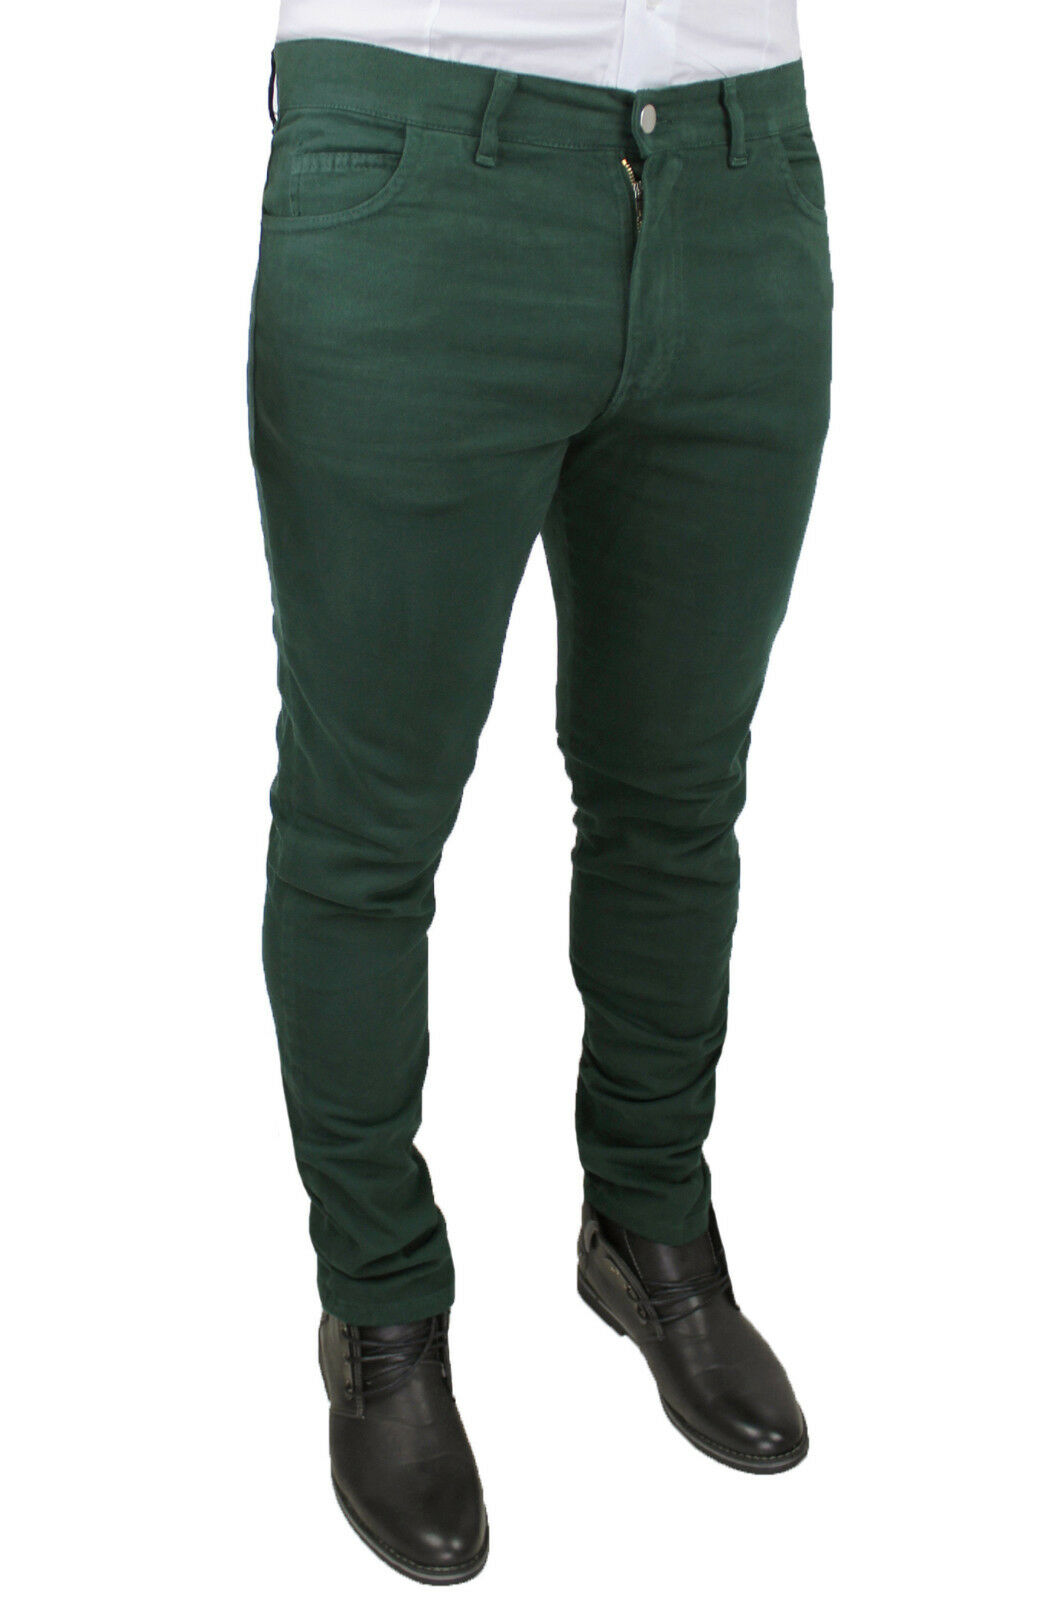 MEN'S TROUSERS BATTISTINI DARK GREEN MILITARY JEANS CASUAL WINTER MADE IN ITALY